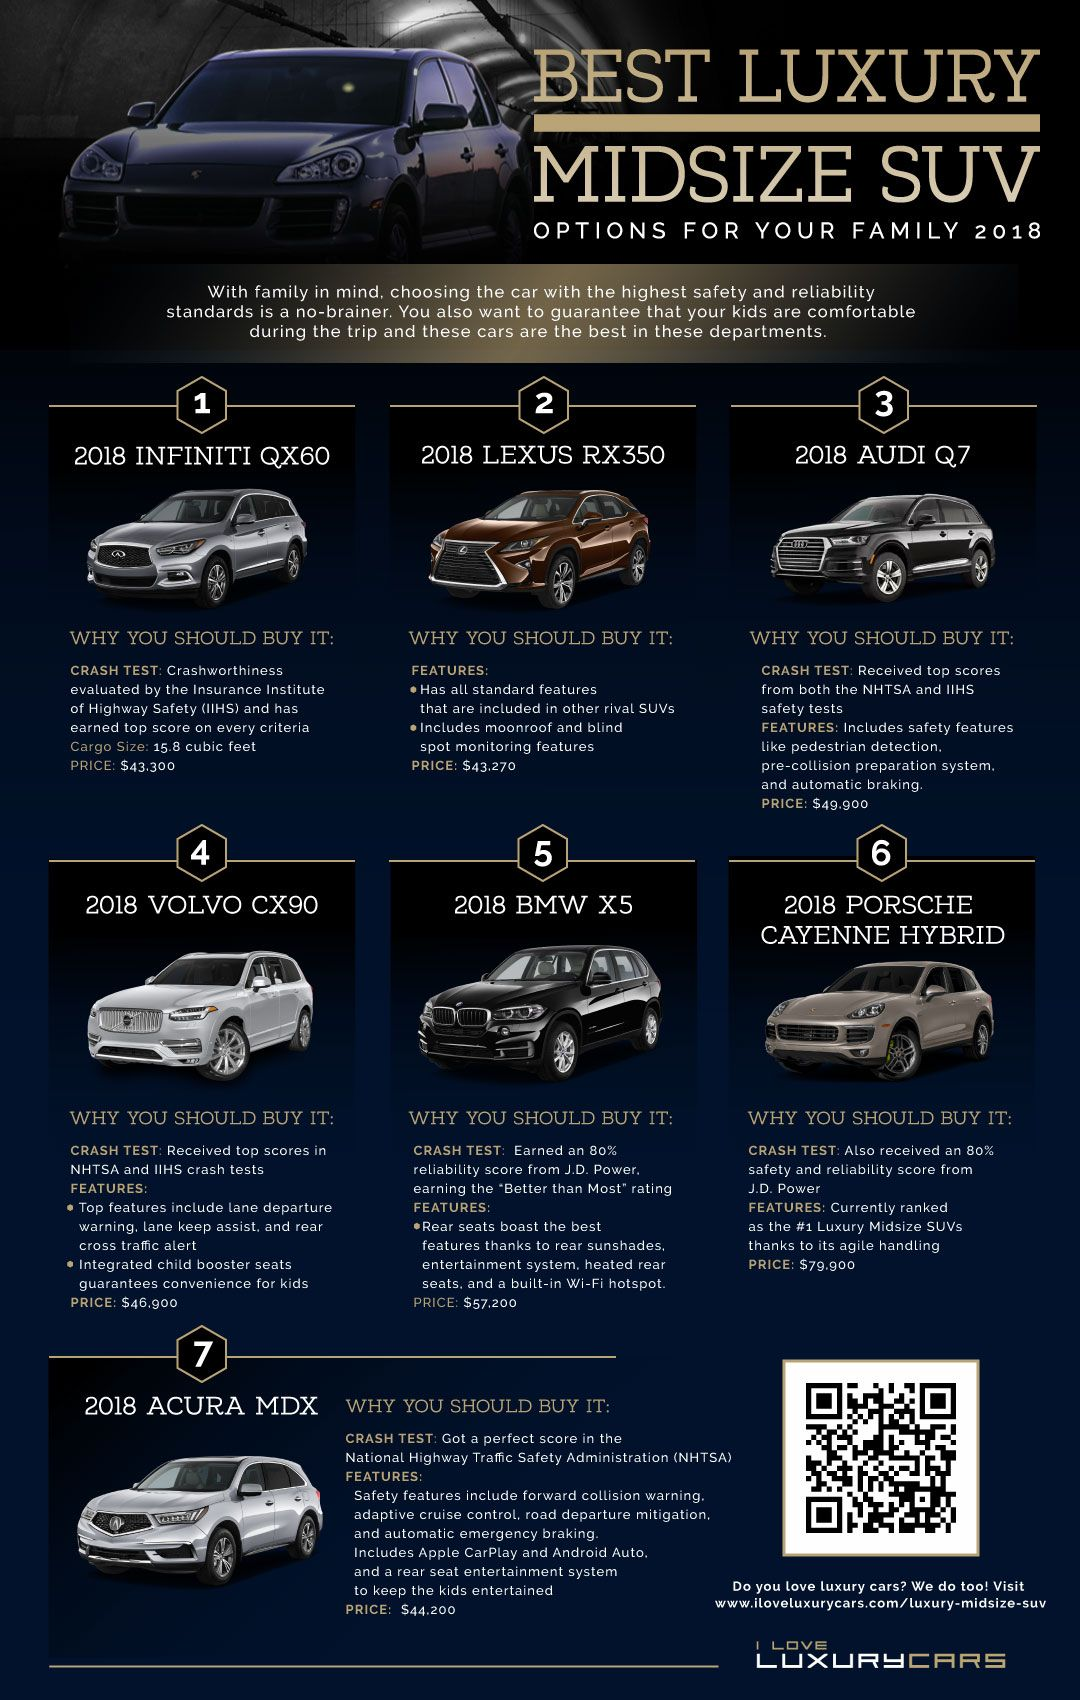 Best Luxury Midsize Suv Options For Your Family I Love Luxury Cars Luxury Suv Most Reliable Suv Best Midsize Suv